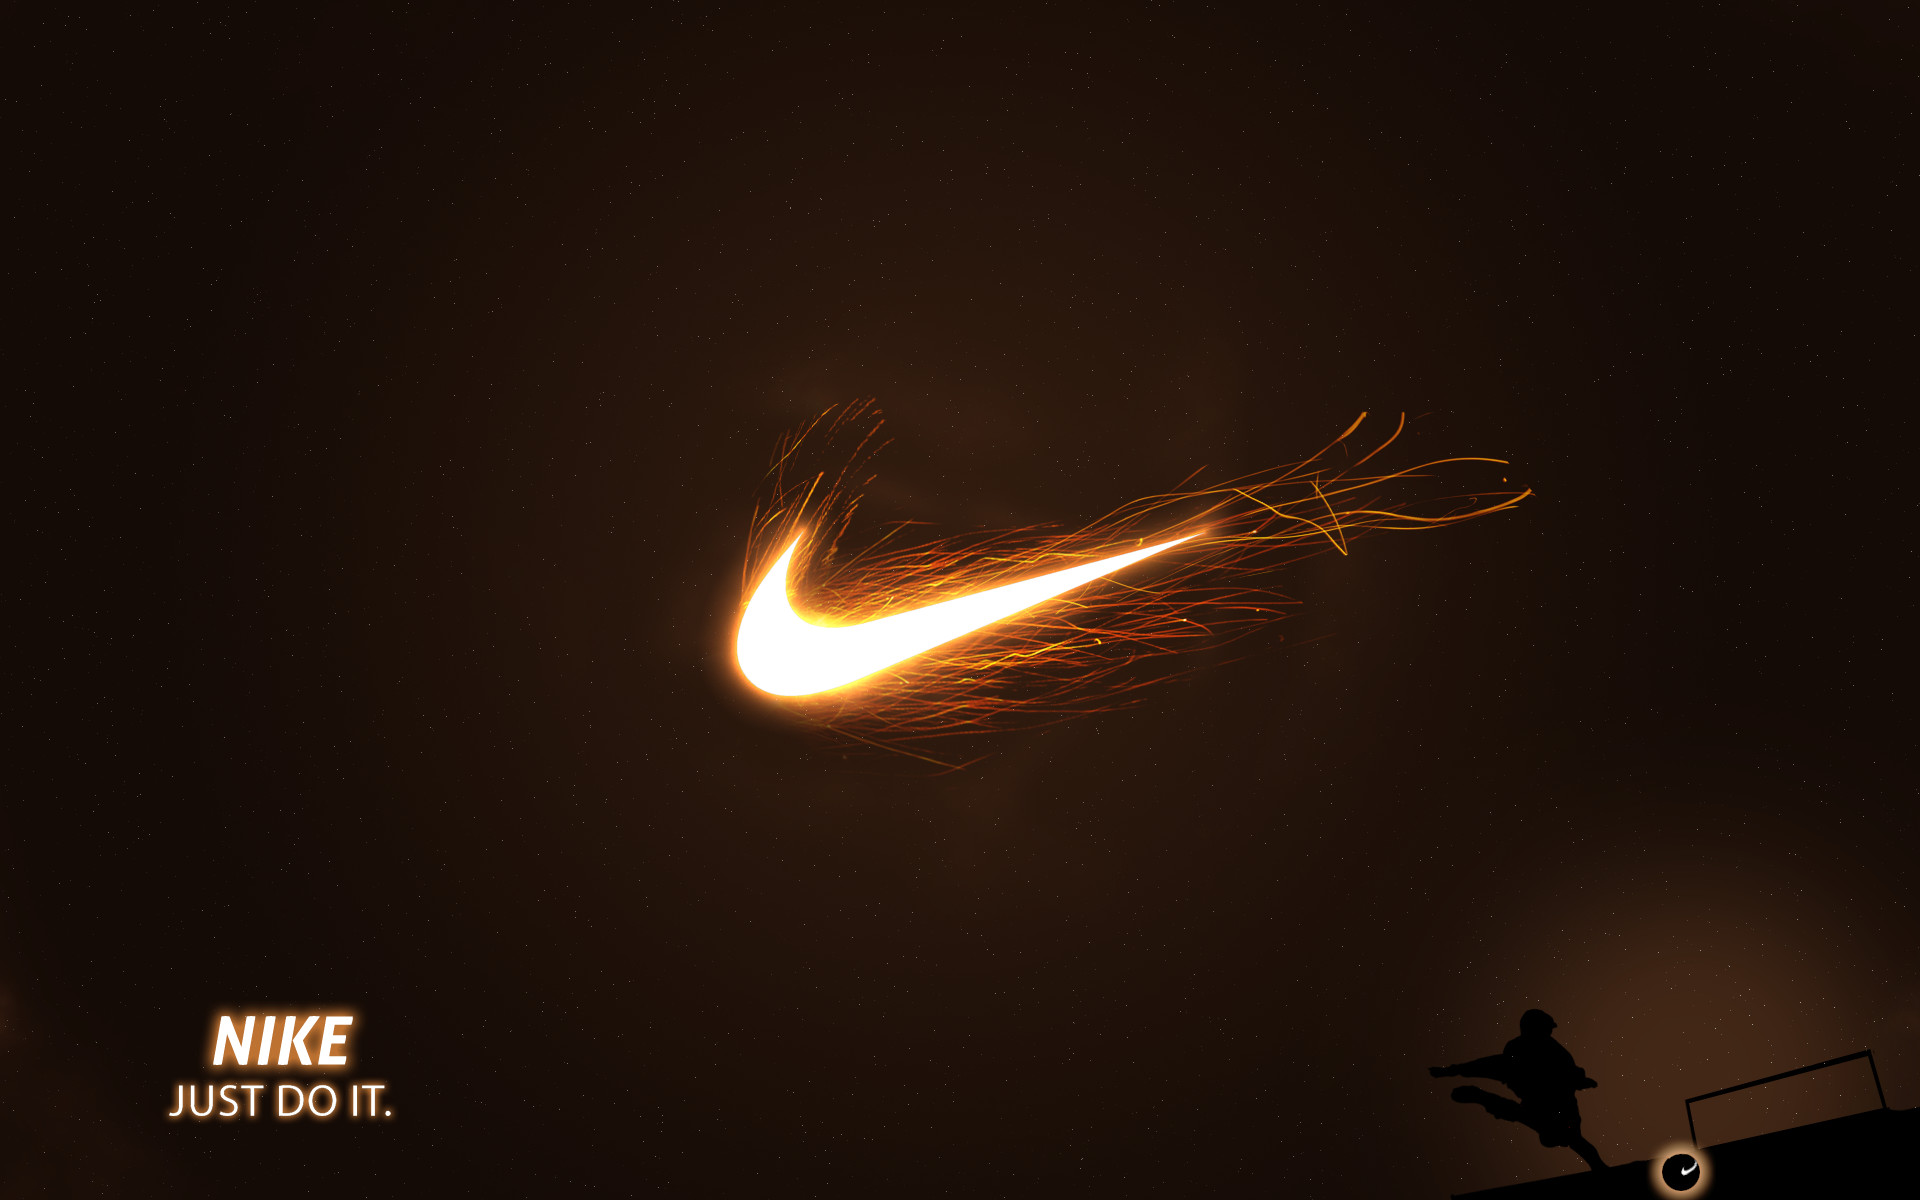 nike swoosh wallpaper impremedianet